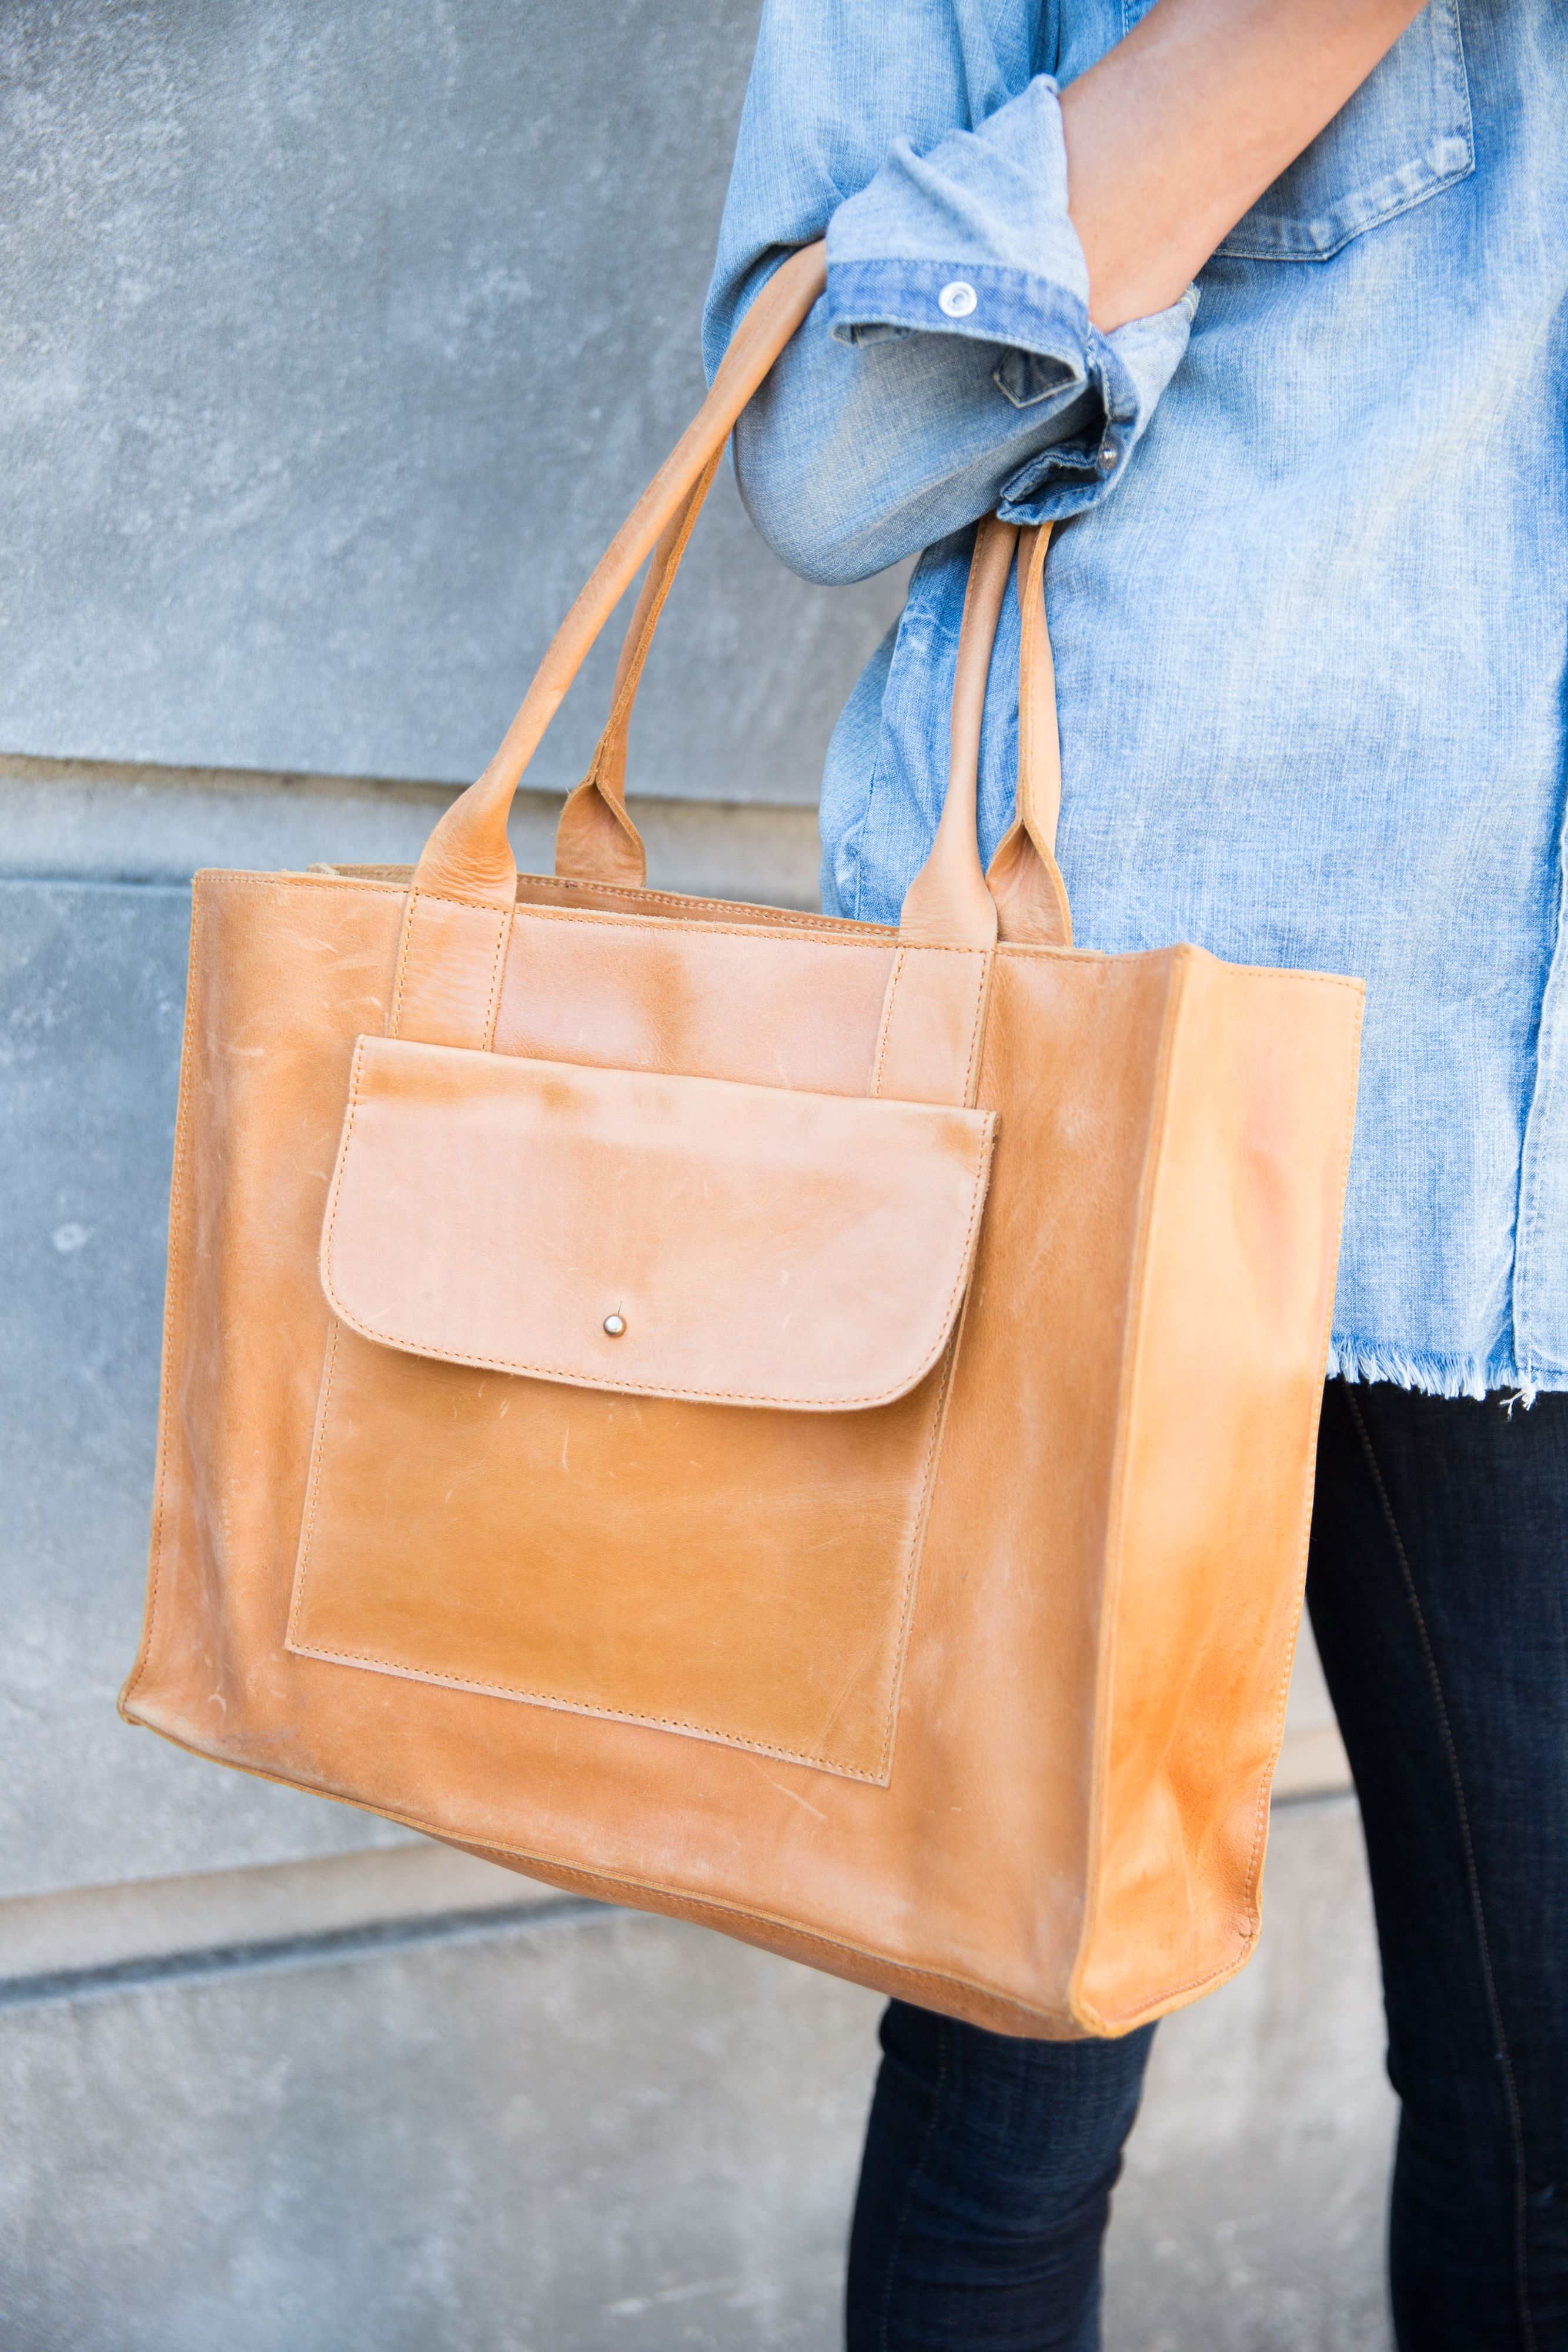 ebe6c6821d Clean Lines · Tote Bags · Feminine · Women s · Tote Bag · We know the  struggle of finding a work tote equally beautiful and functional. That s why